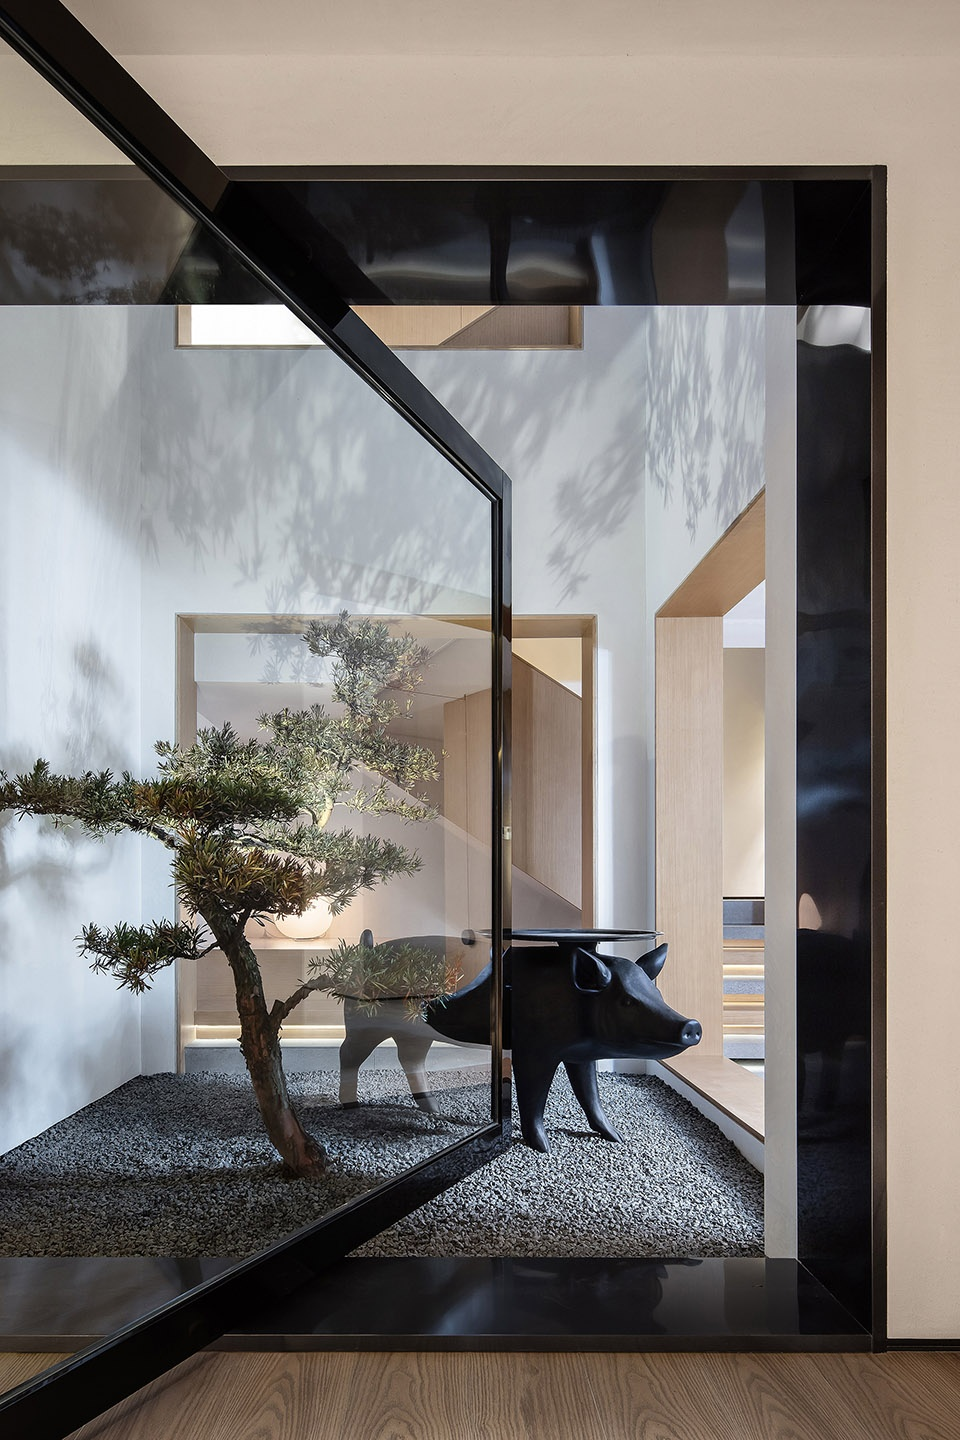 052-a-desired-home-china-by-liang-architecture-studio-960x1440.jpg